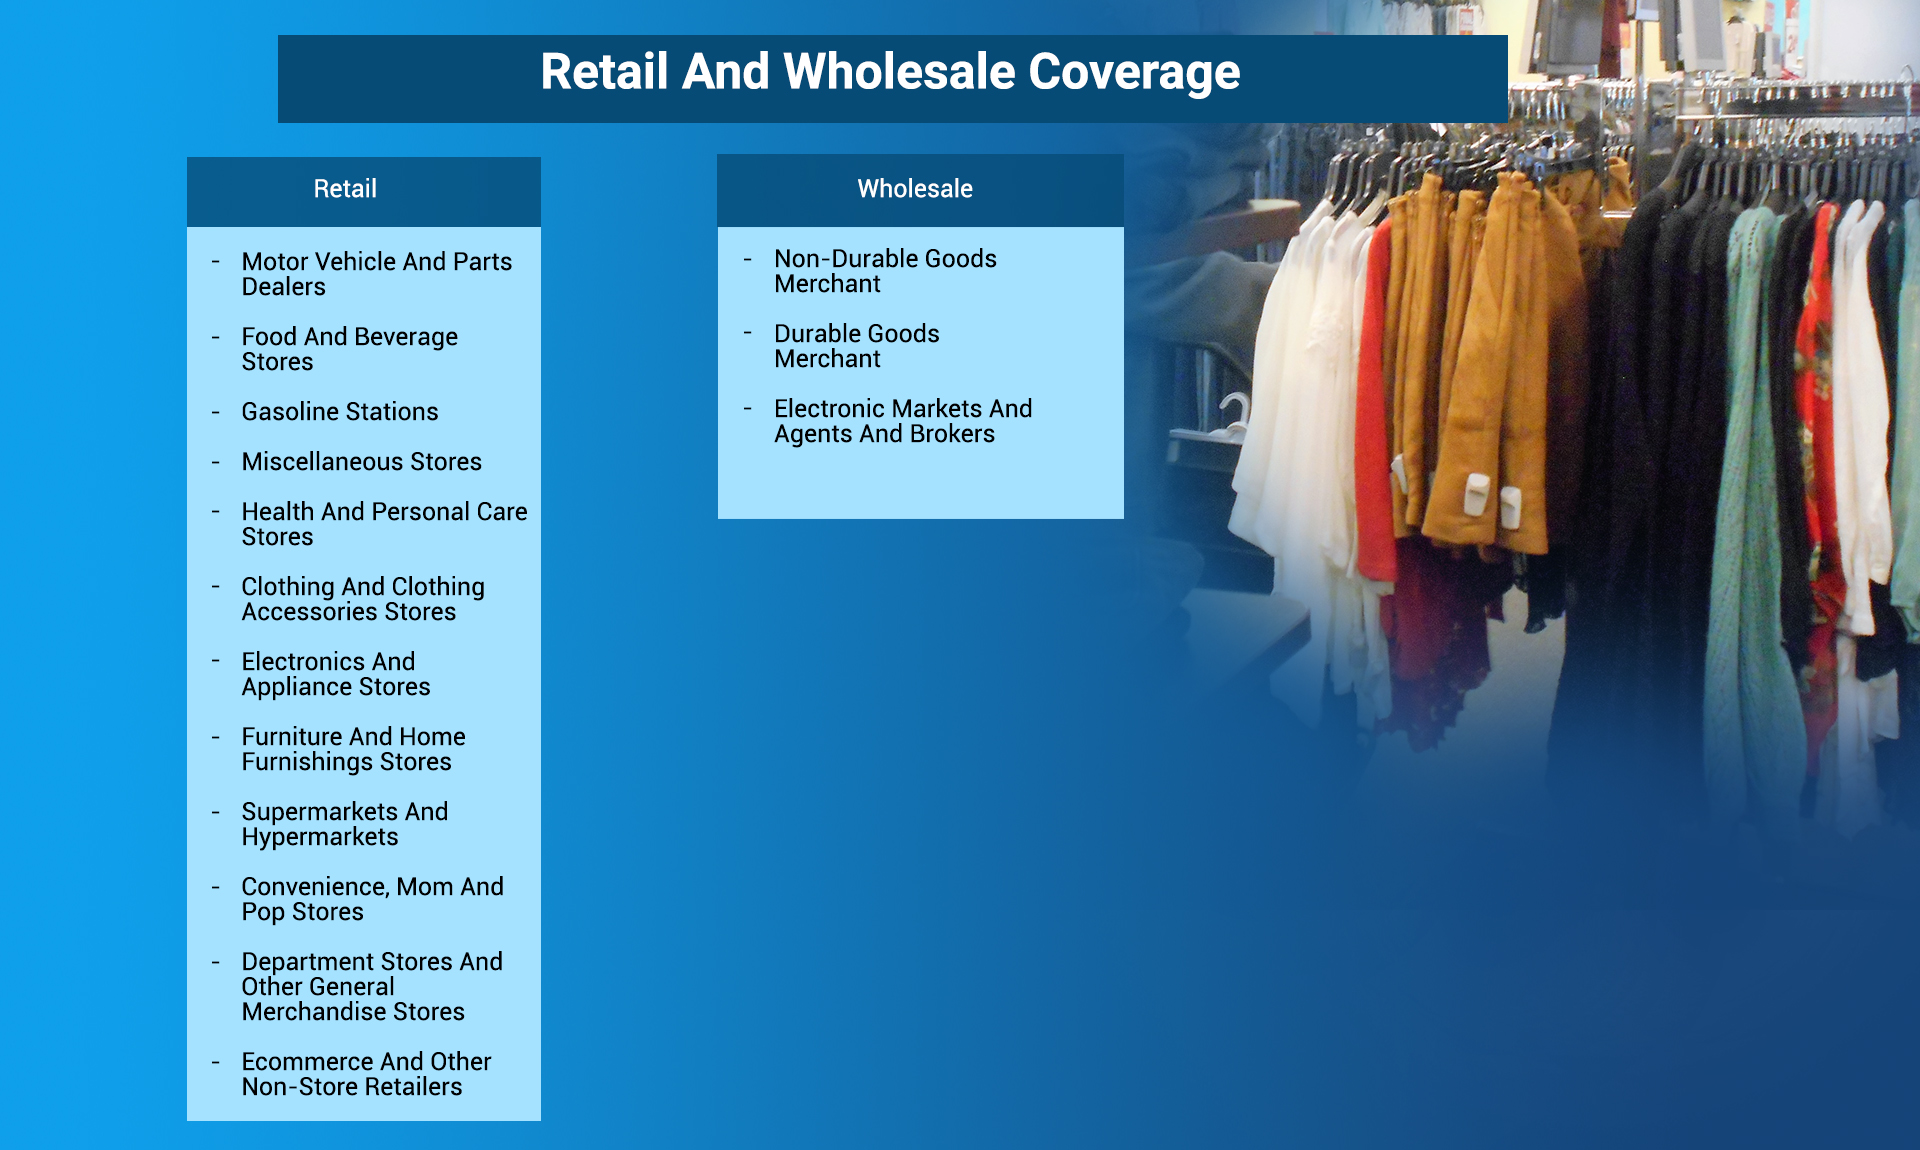 Retail and Wholesale Coverage